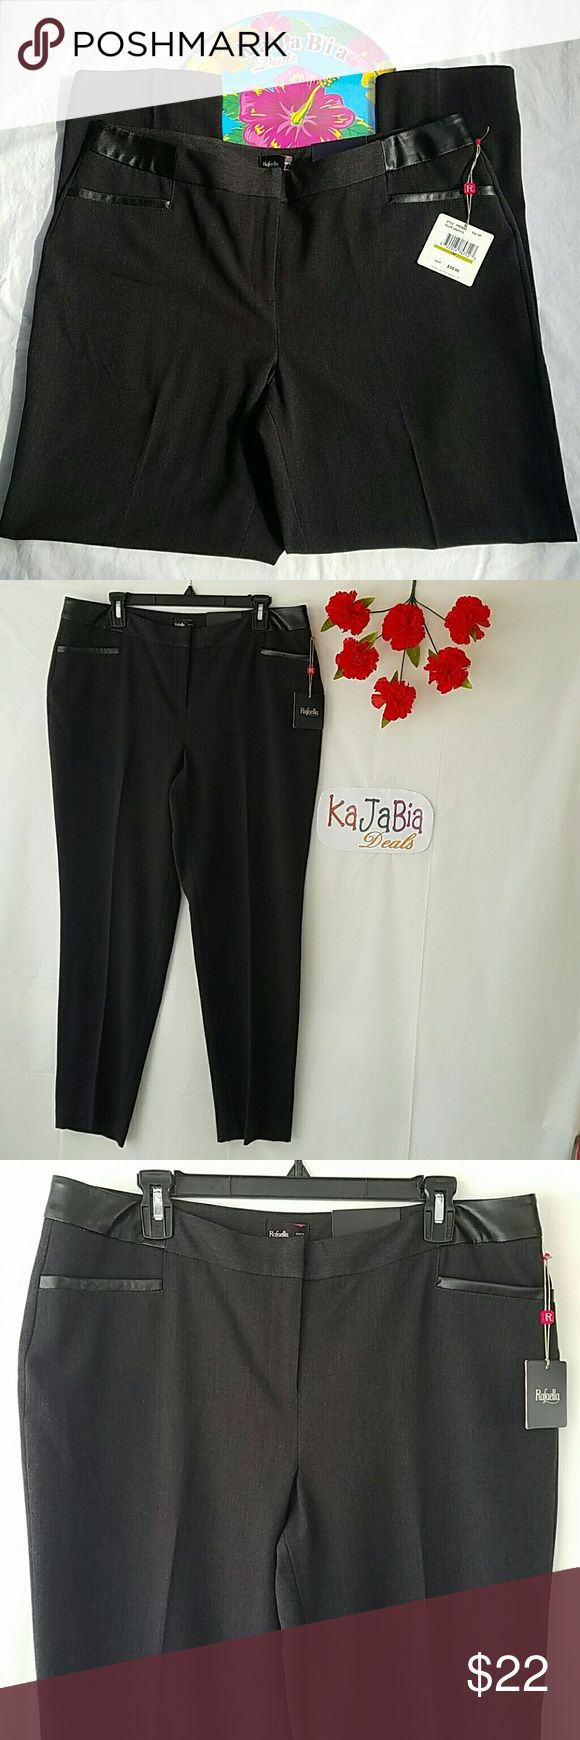 """Rafaella Curvy Straight Pants NWT. Never worn. Perfevr condition. No rips. No stains. 18"""" waist. 28"""" inseam. Color graphite. Faux leather detail at waist and back & front pockets. Very cool looking.  62% polyester, 33% rayon, 5% spandex. Size 14P. Rafaella Pants Straight Leg"""